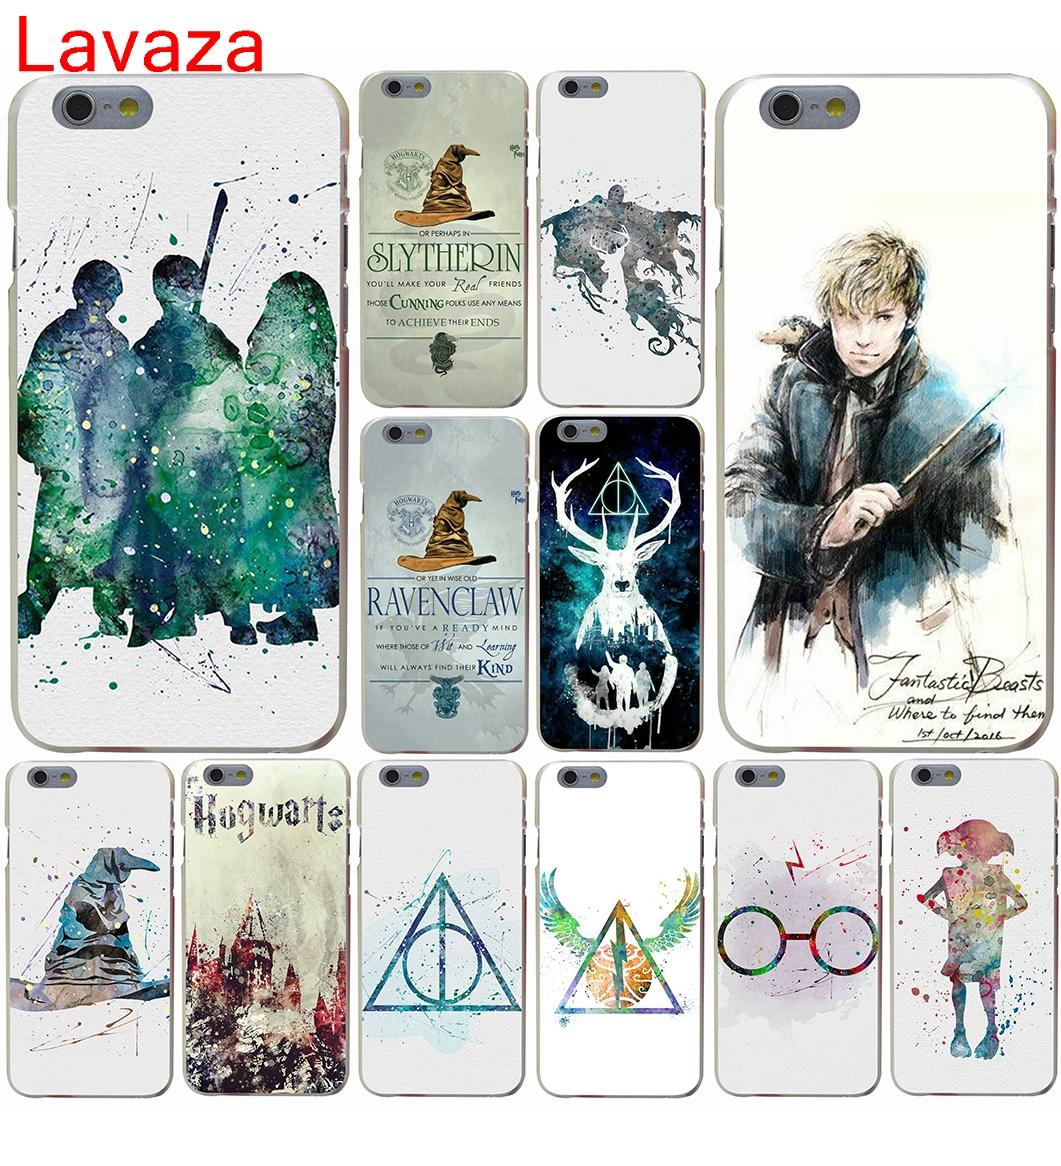 Lavaza Harry Potter Watercolors Hard Case for iphone 4 4s 5c 5s 5 SE 6 6s 6/7/8 plus X for iphone 7 case